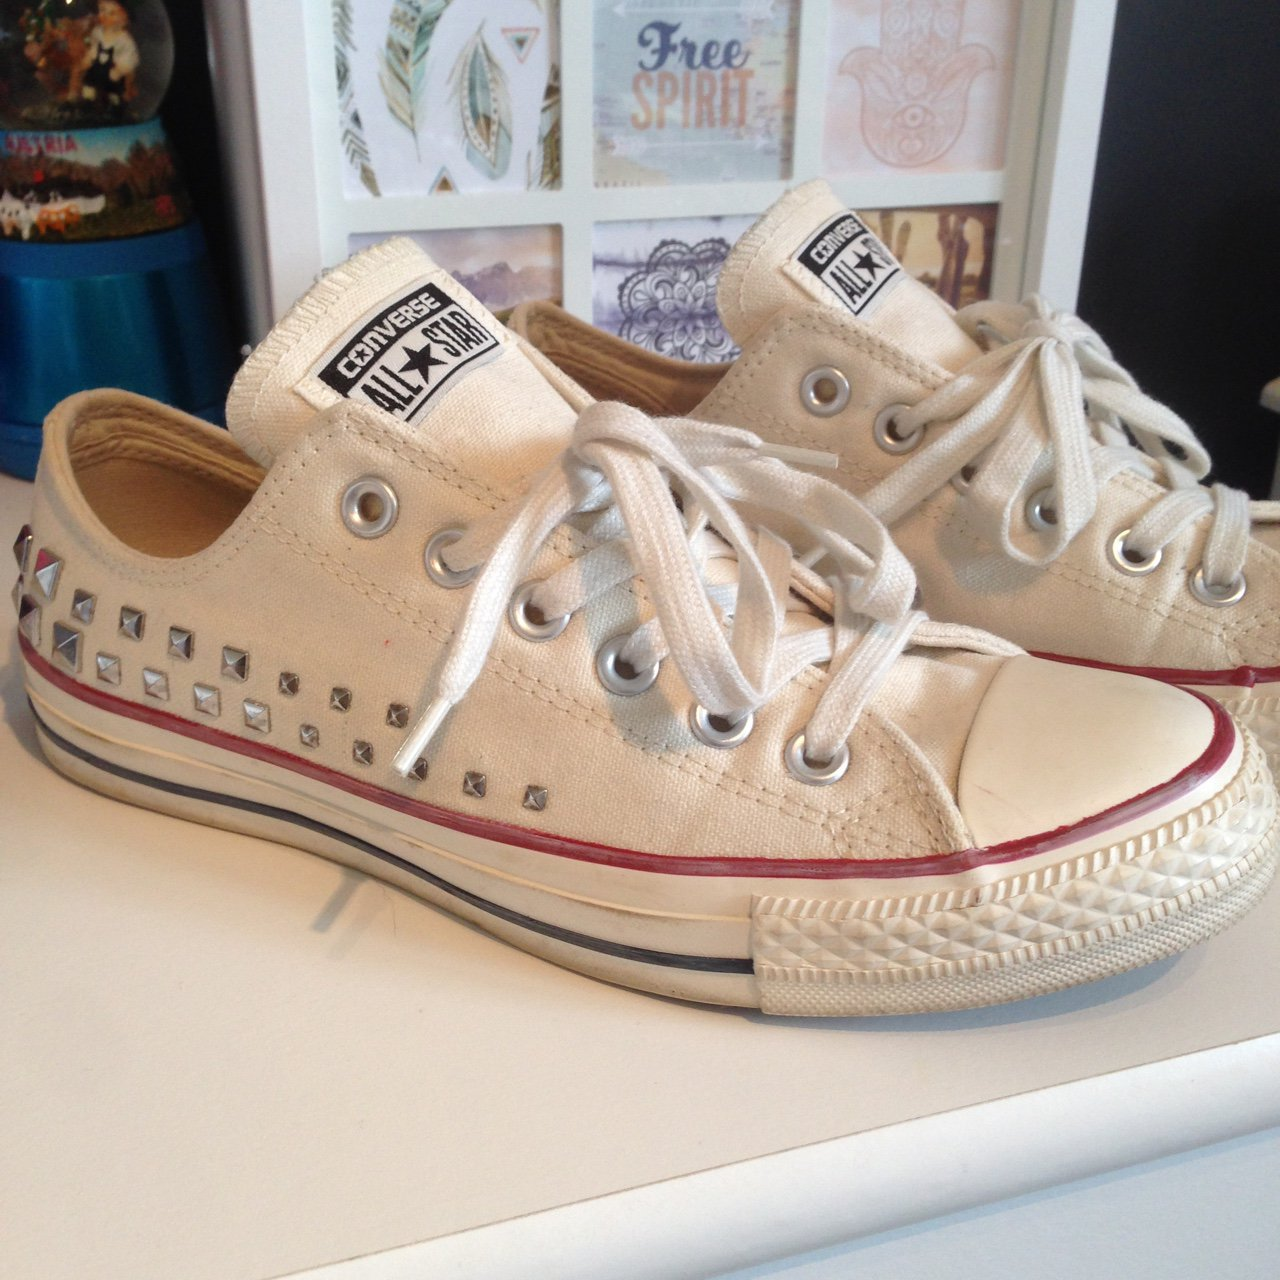 dc68552868b1 Off white studded Converse size 6. Worn once. Small mark in - Depop